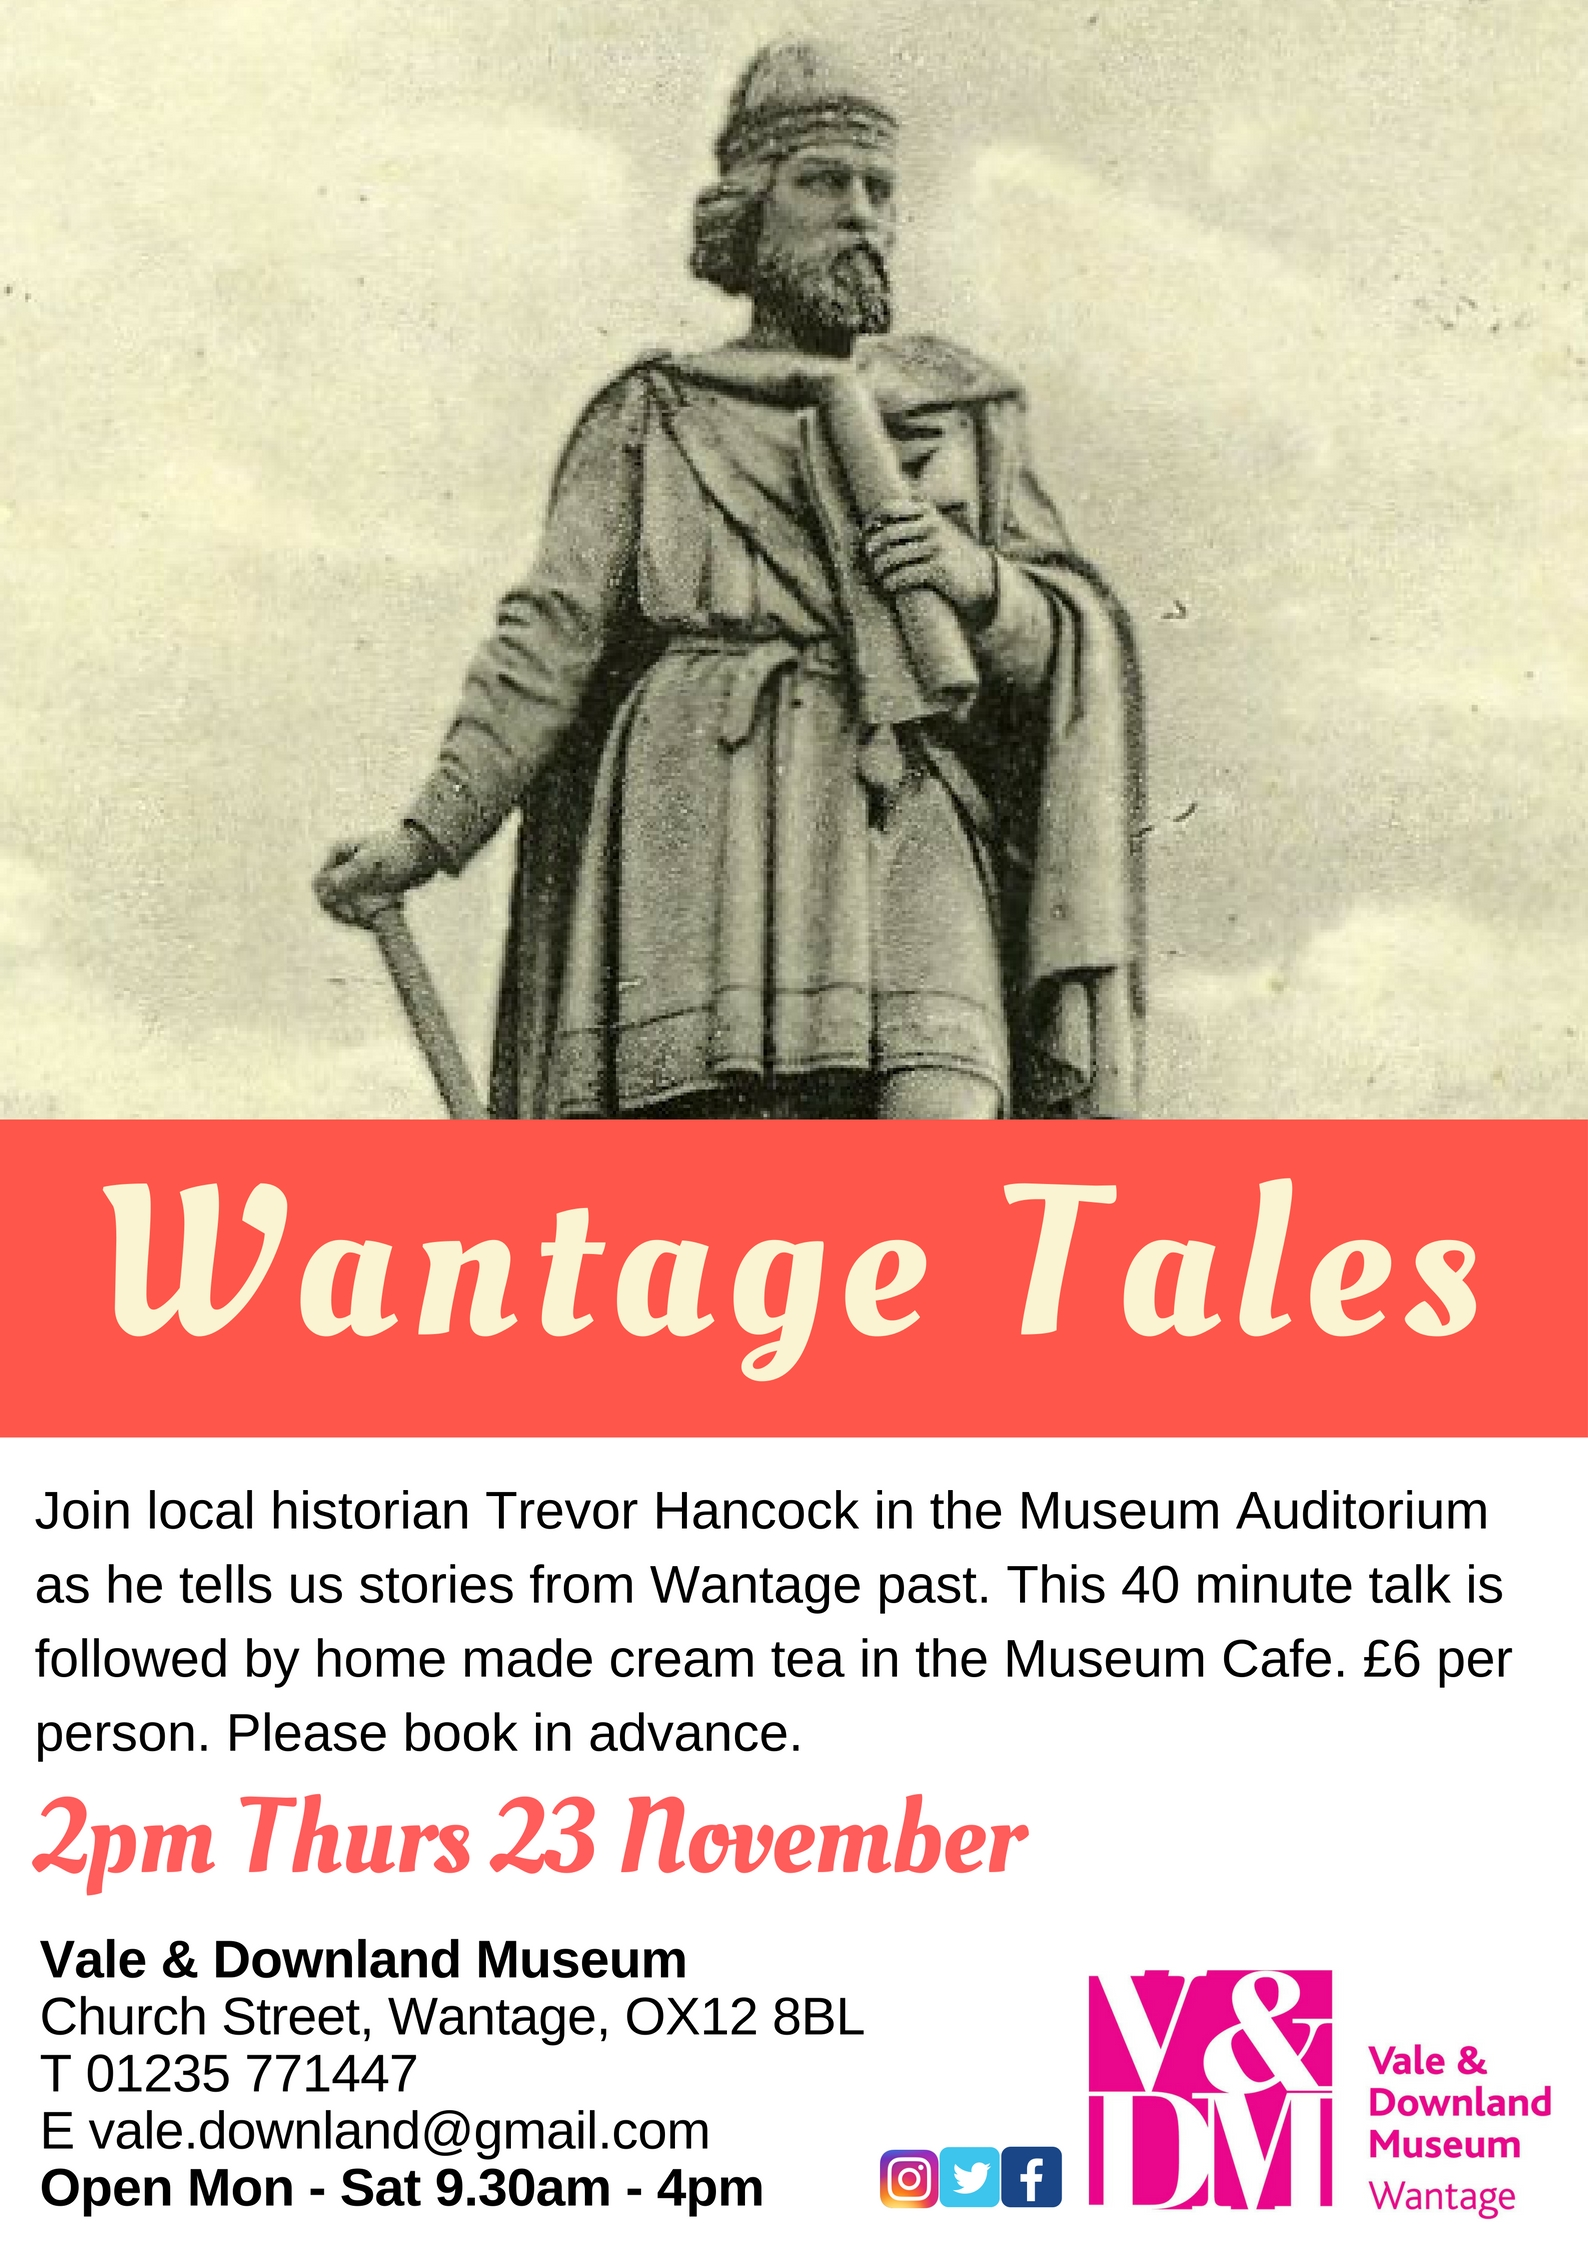 Talks & Teas - Wantage Tales